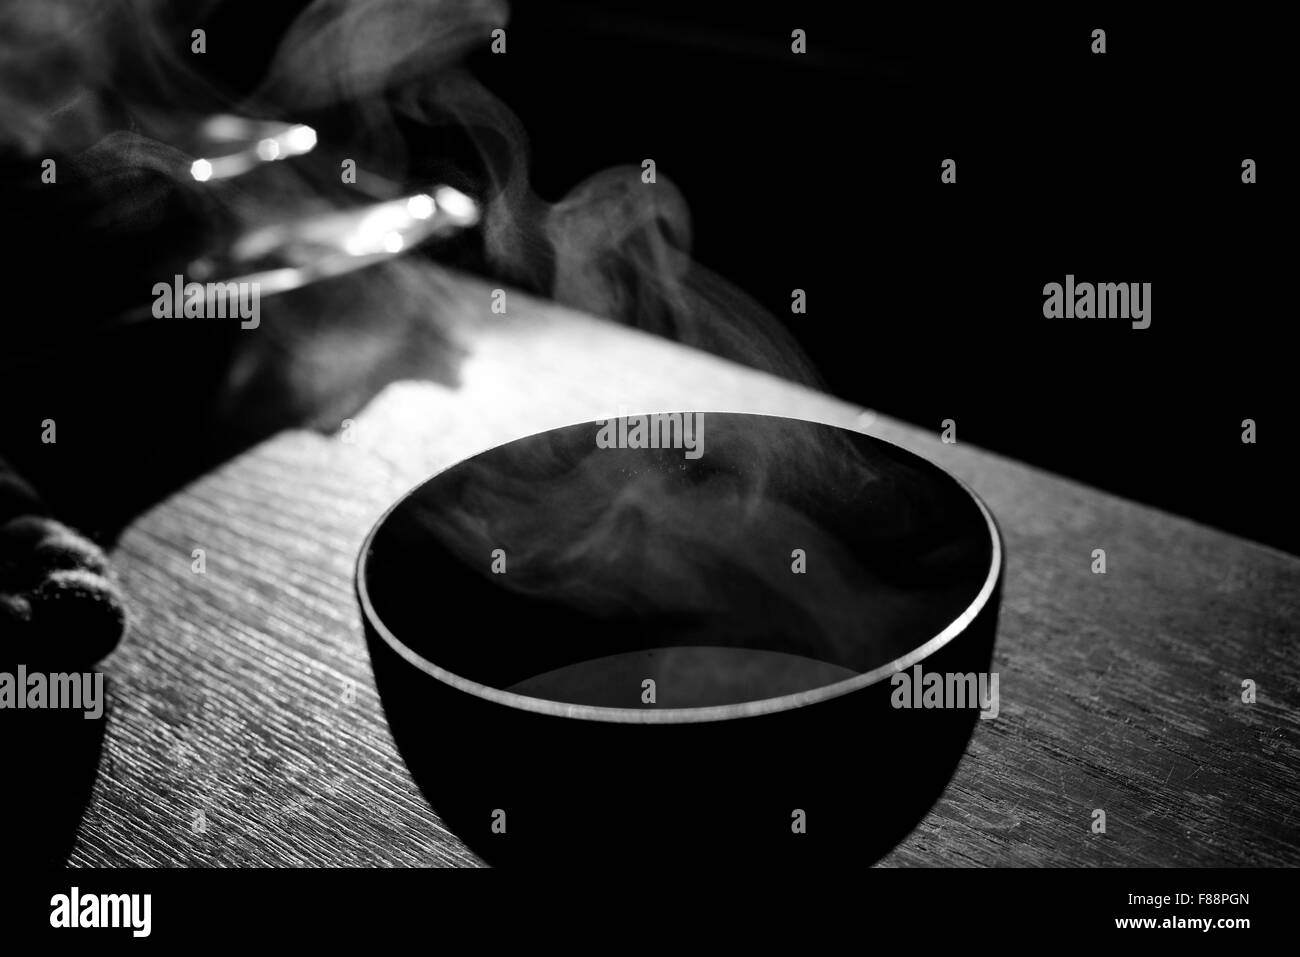 Soup bowl with steam rising up - Stock Image